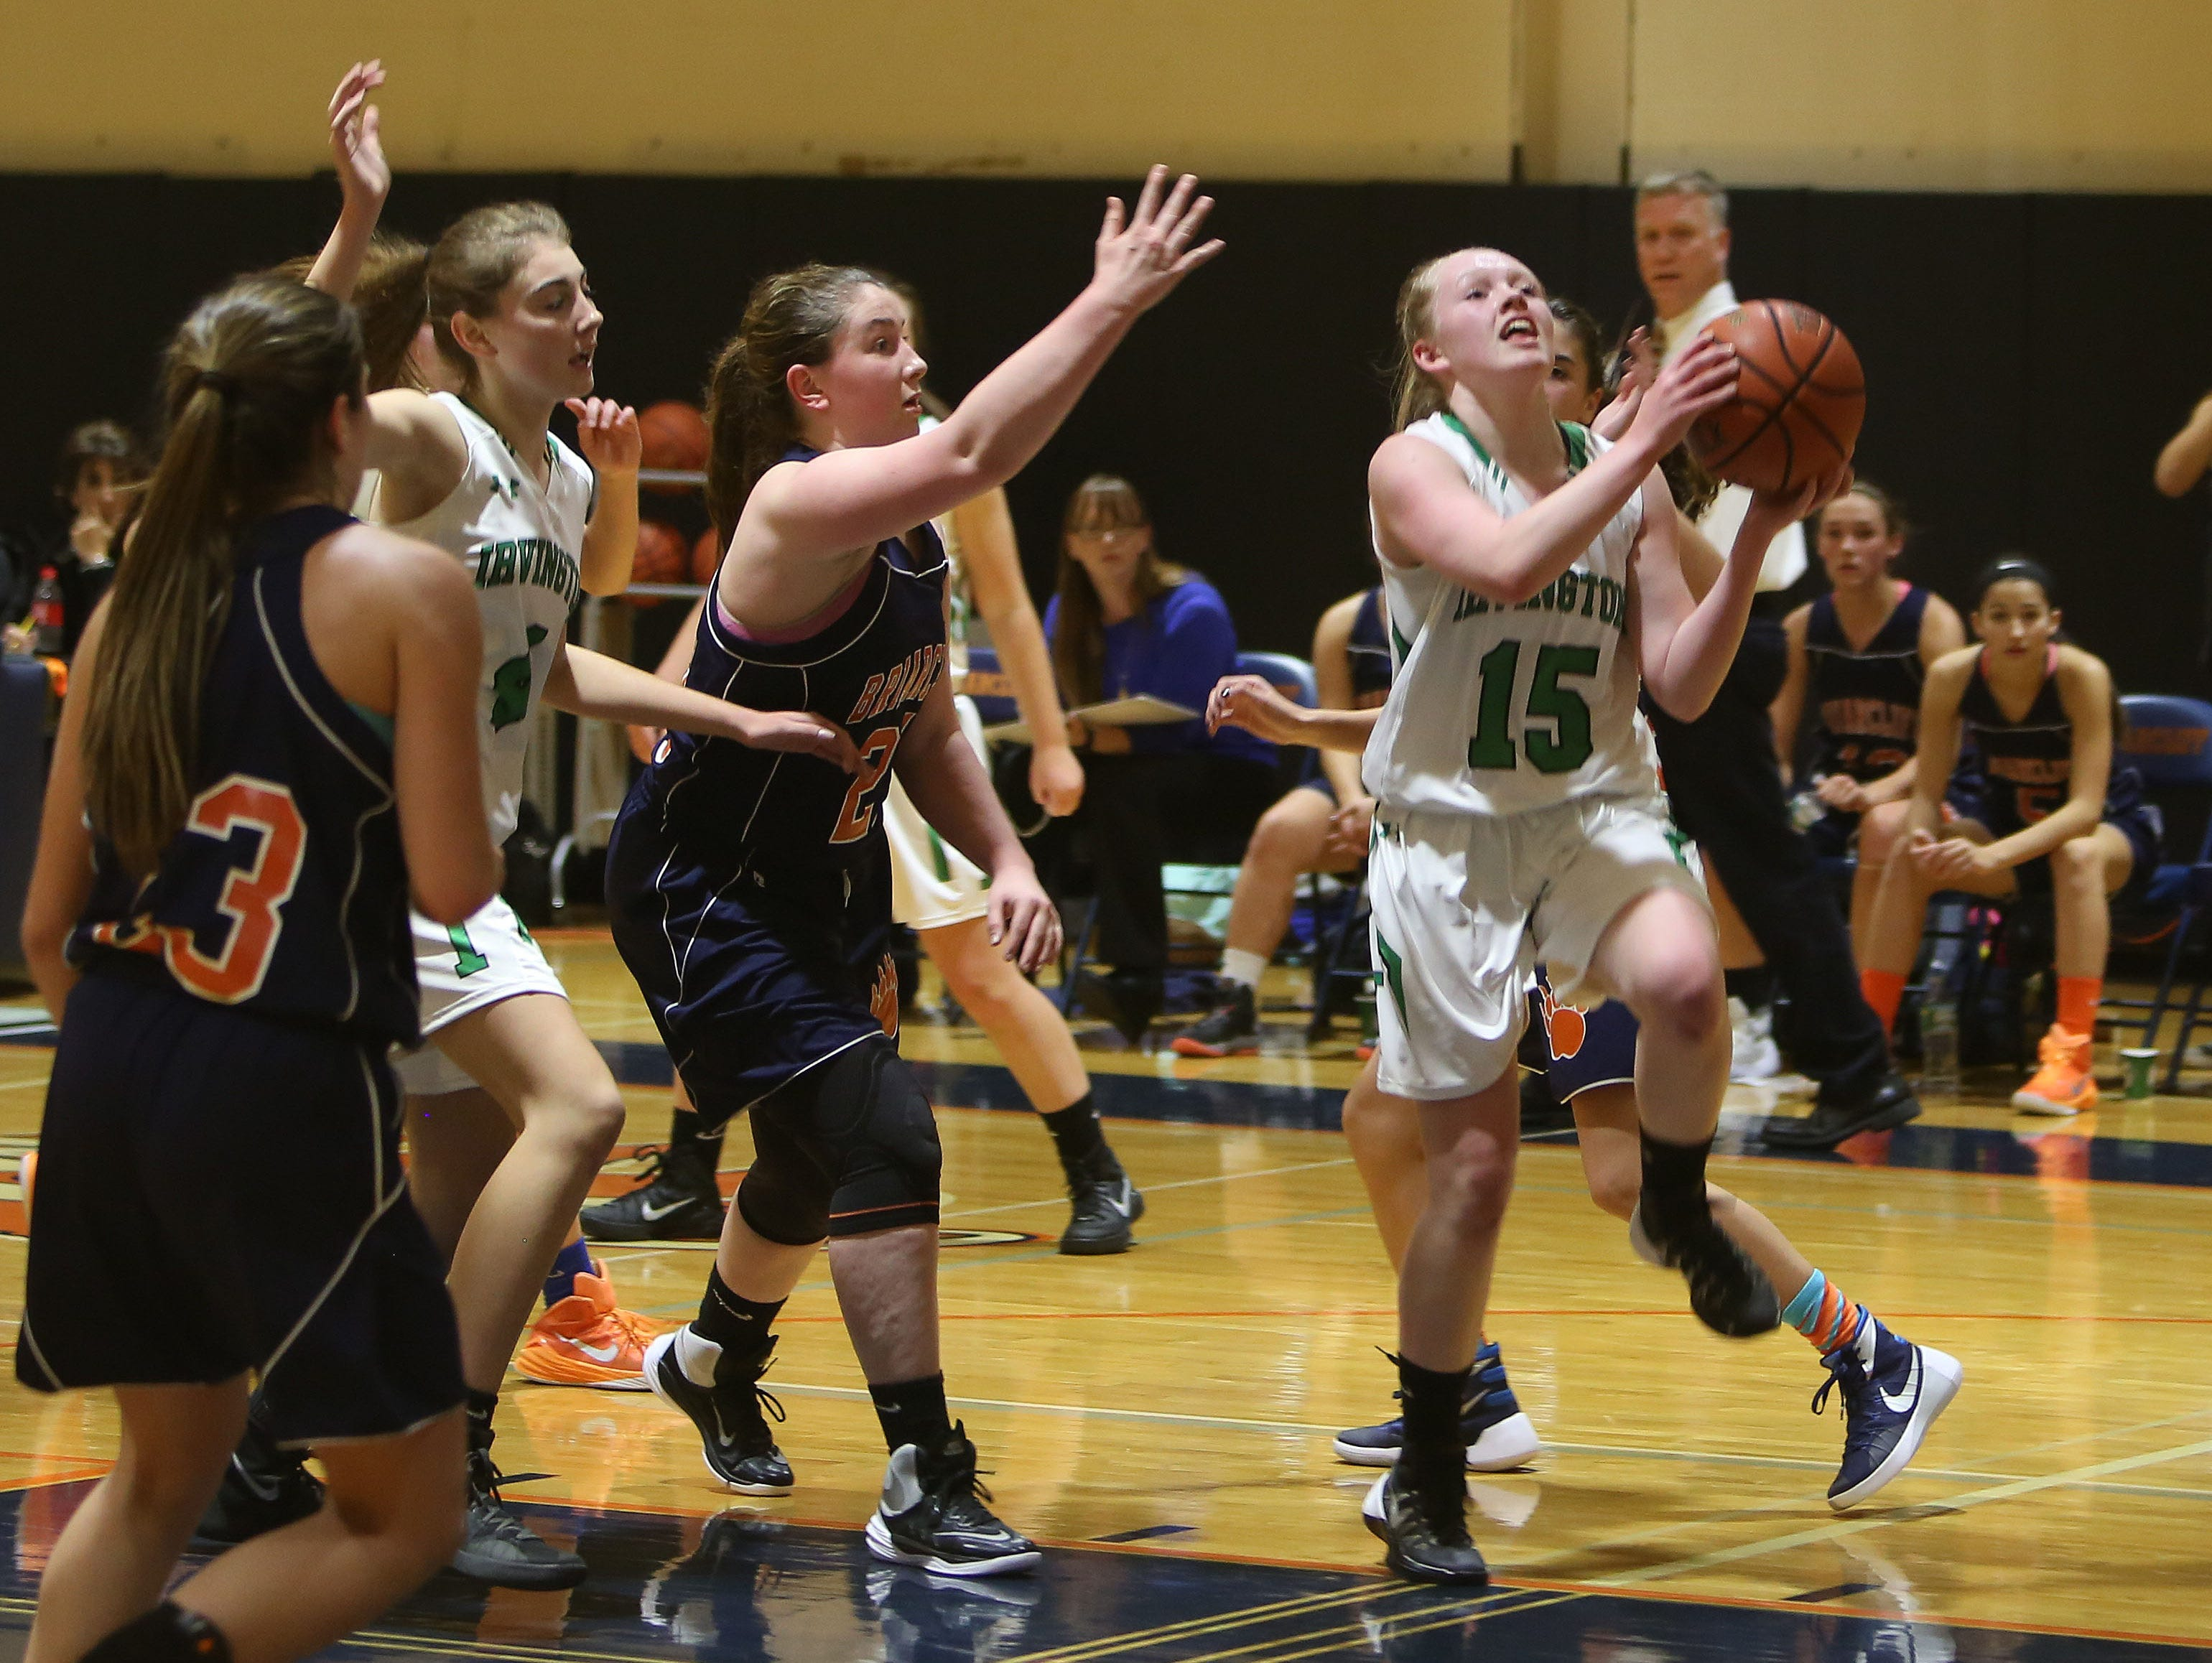 Irvington's Lindsay Halpin (15) drives to the basket against Briarcliff during girls basketball action at Briarcliff High School Dec. 1, 2015. Irvington won the game 71-57.